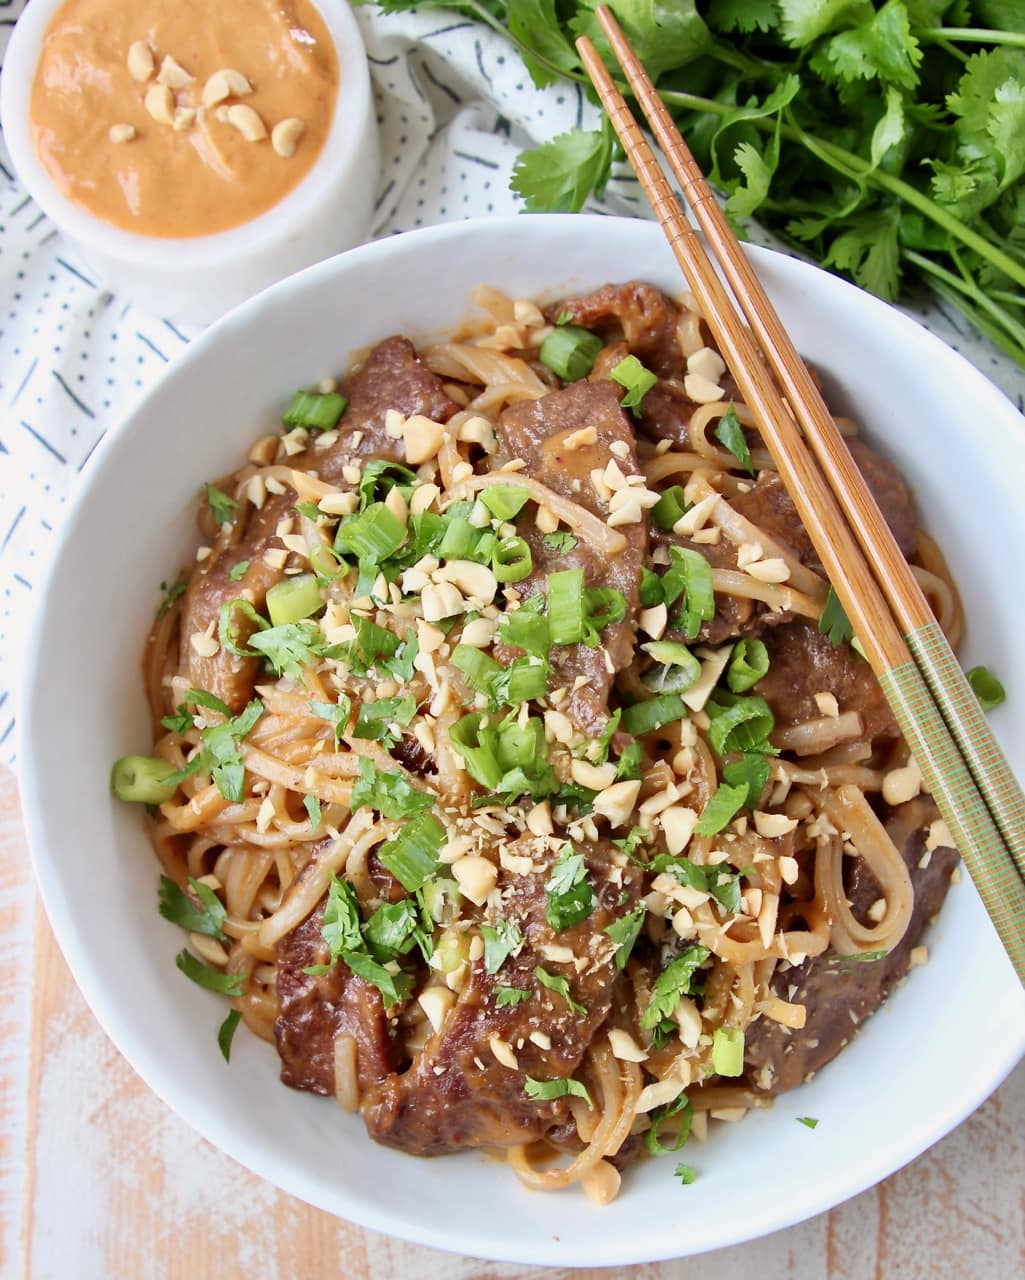 Thai beef and noodles in white bowl, topped with diced green onions